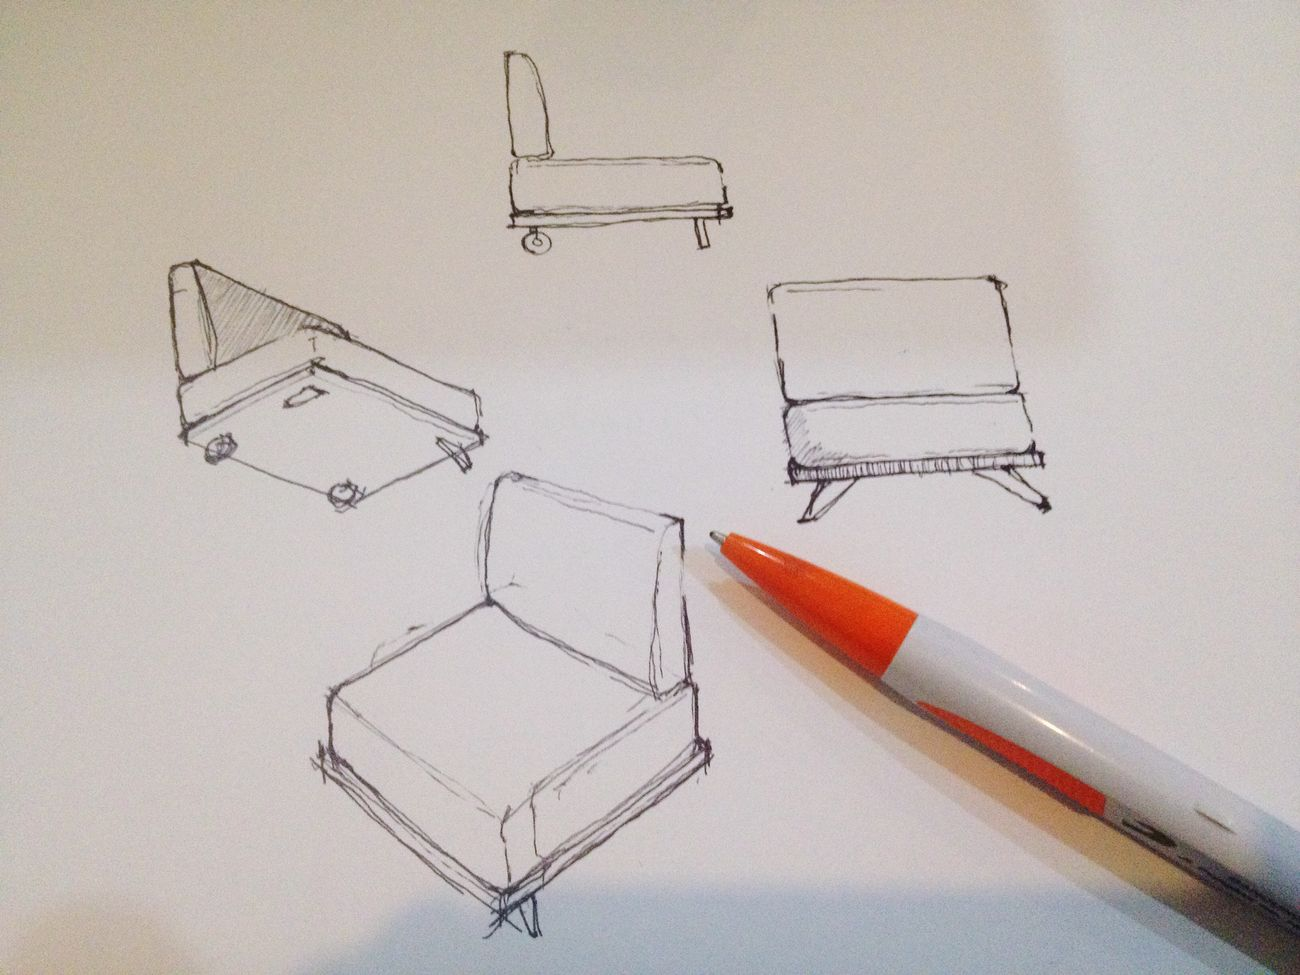 k a n g e n 😔 Sketching Drawing Chair Sofa Art Check This Out Doodling Jheffryswid Design Hello World Interior Design